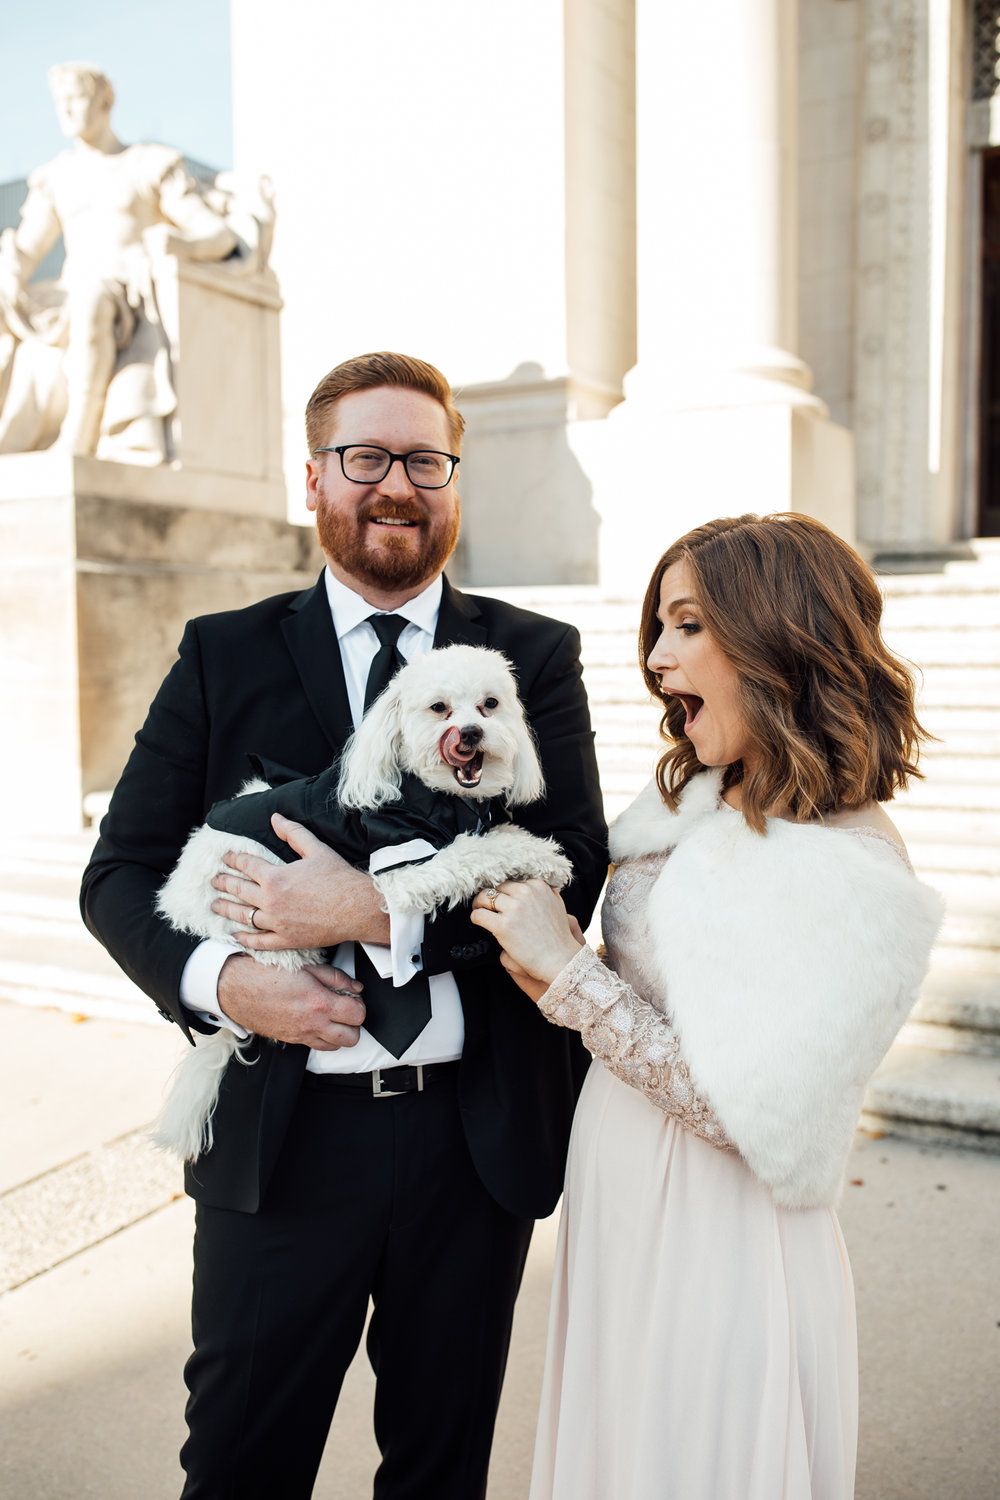 memphis-courthouse-elopement-thewarmtharoundyou-amanda-michael (110 of 143).jpg